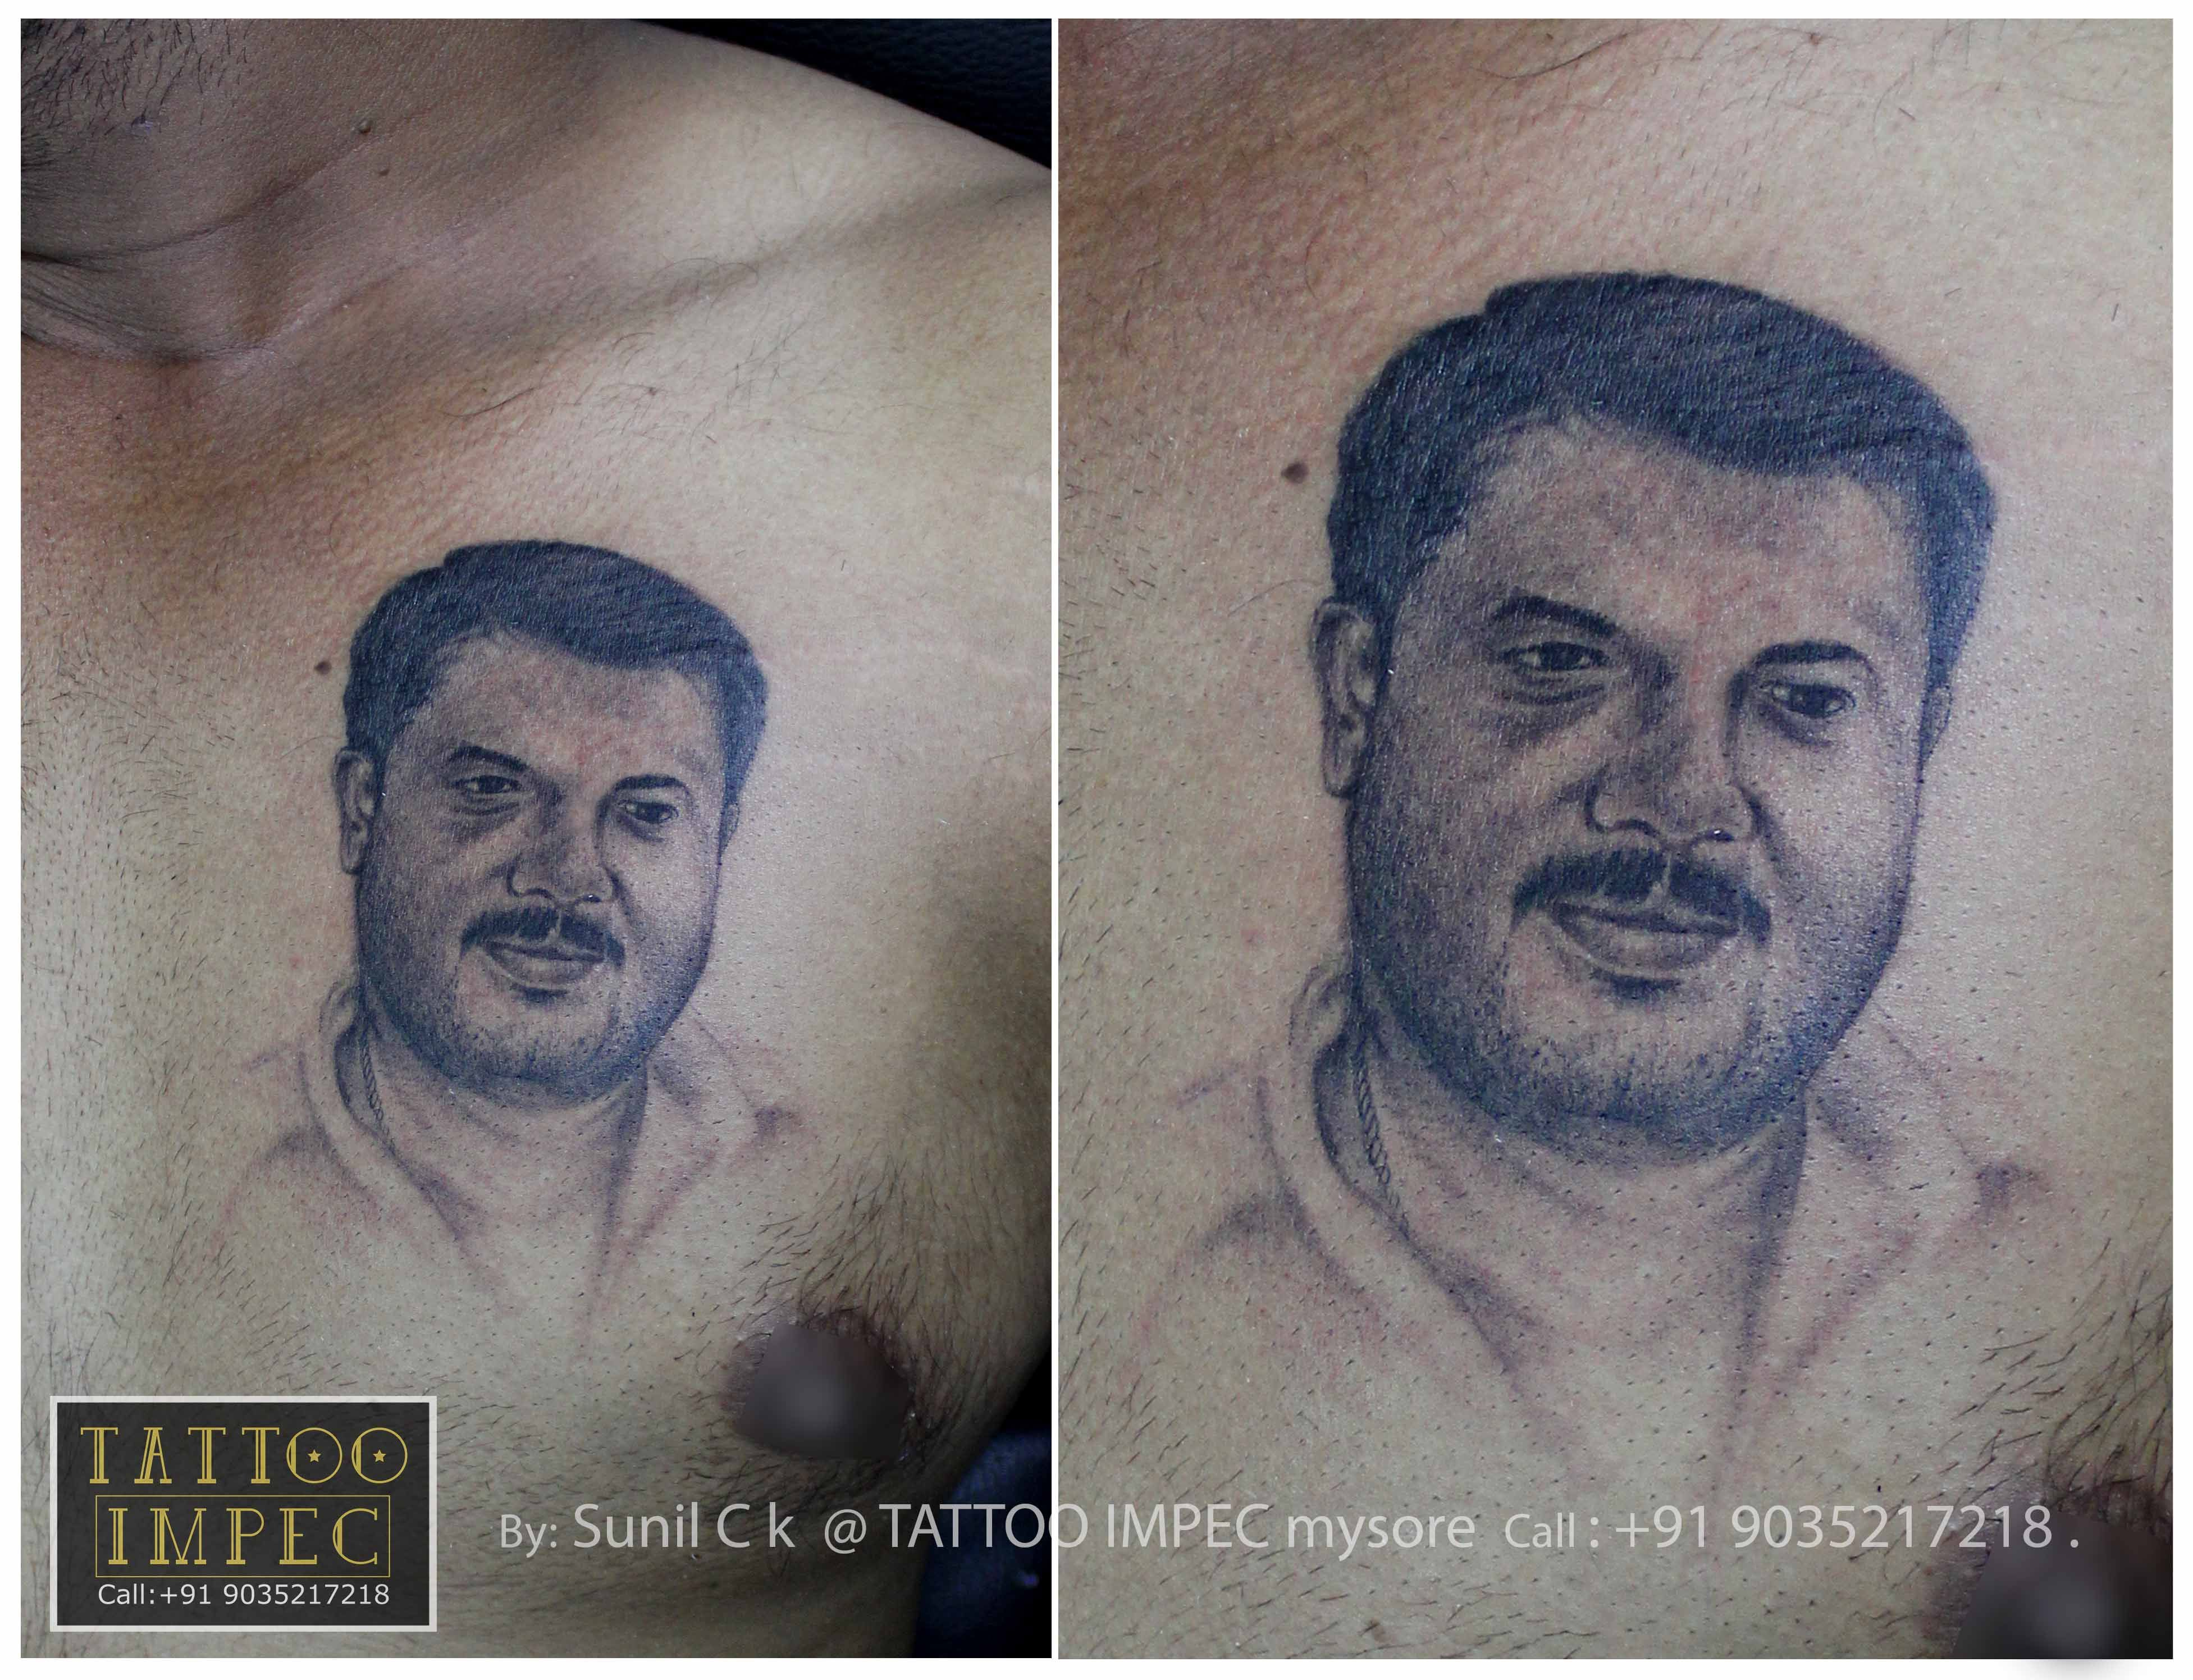 # Portrait tattoo # ;) Get inked from Experienced Tattoo Professional.. Call: Sunil Ck @ +91 9035217218 to book your appointment.  www.facebook.com/tattooimpec